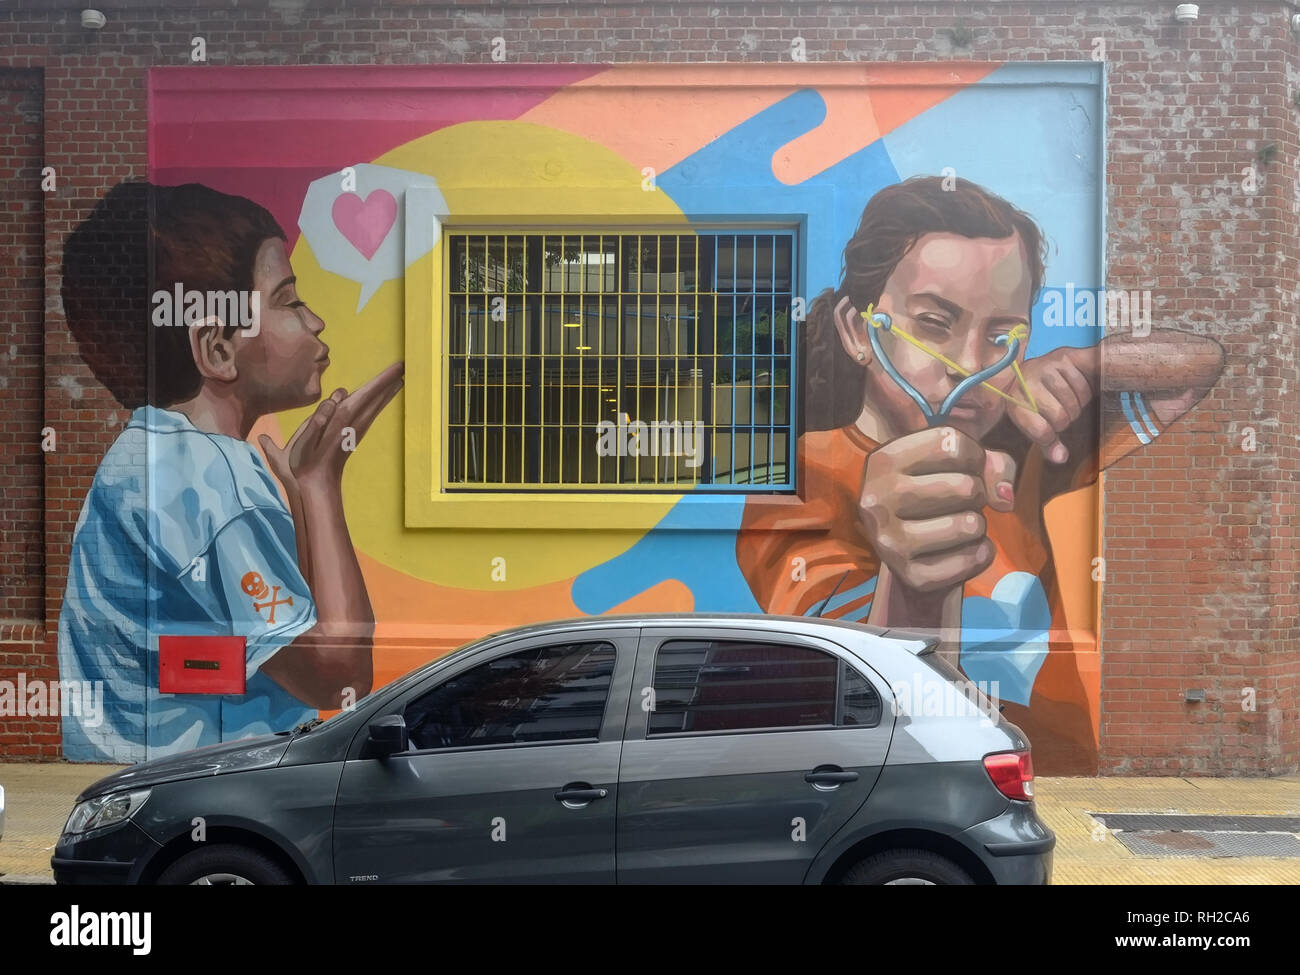 Street Art, Buenos Aires – Equality - Stock Image